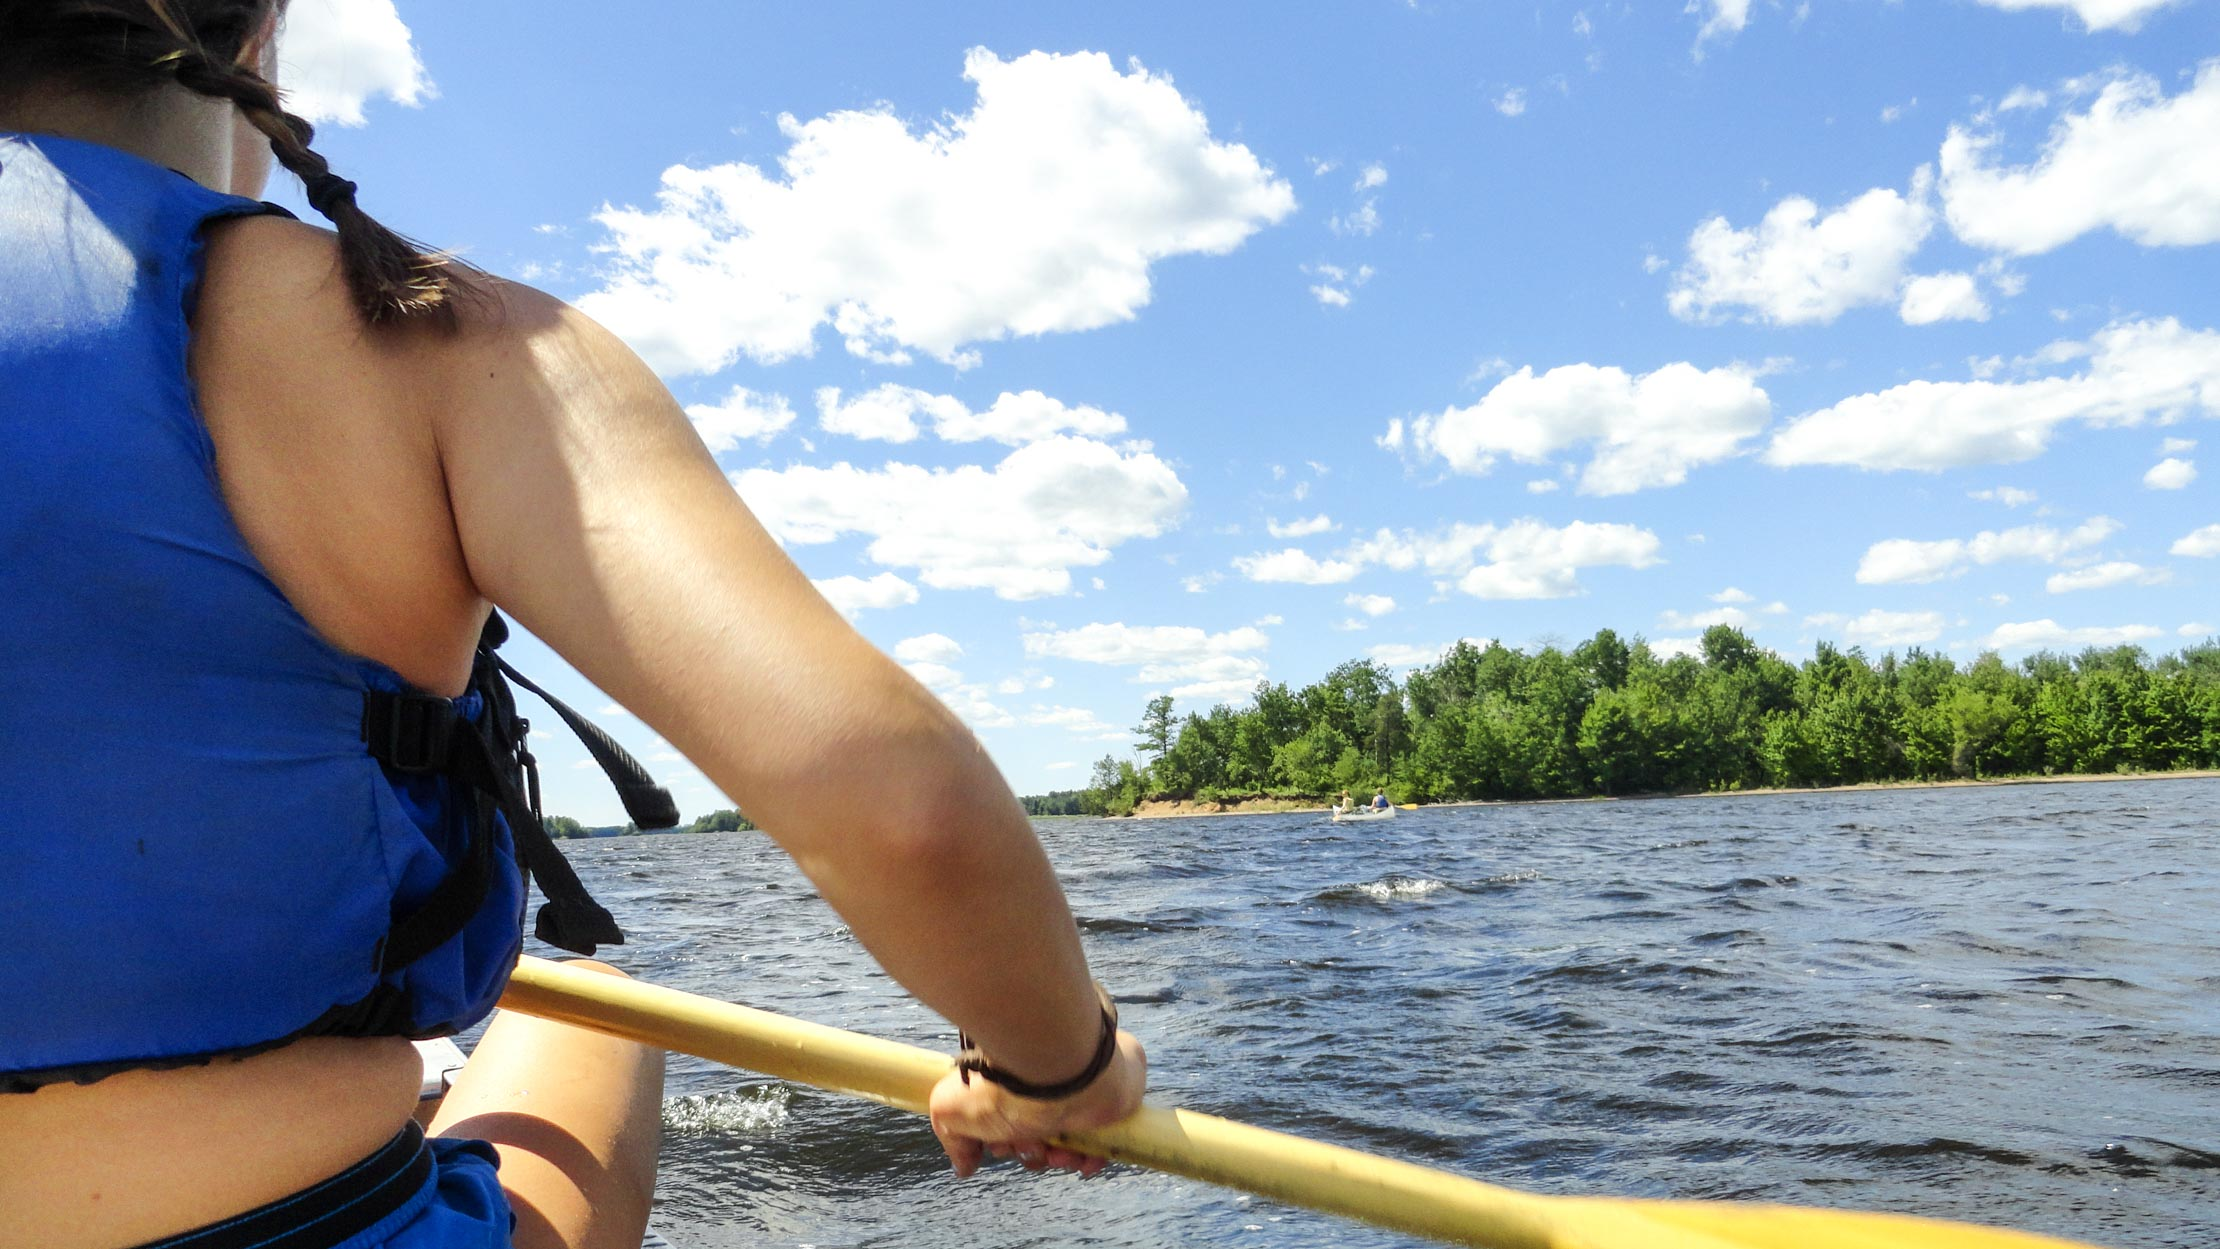 View of camper's back while paddling canoe